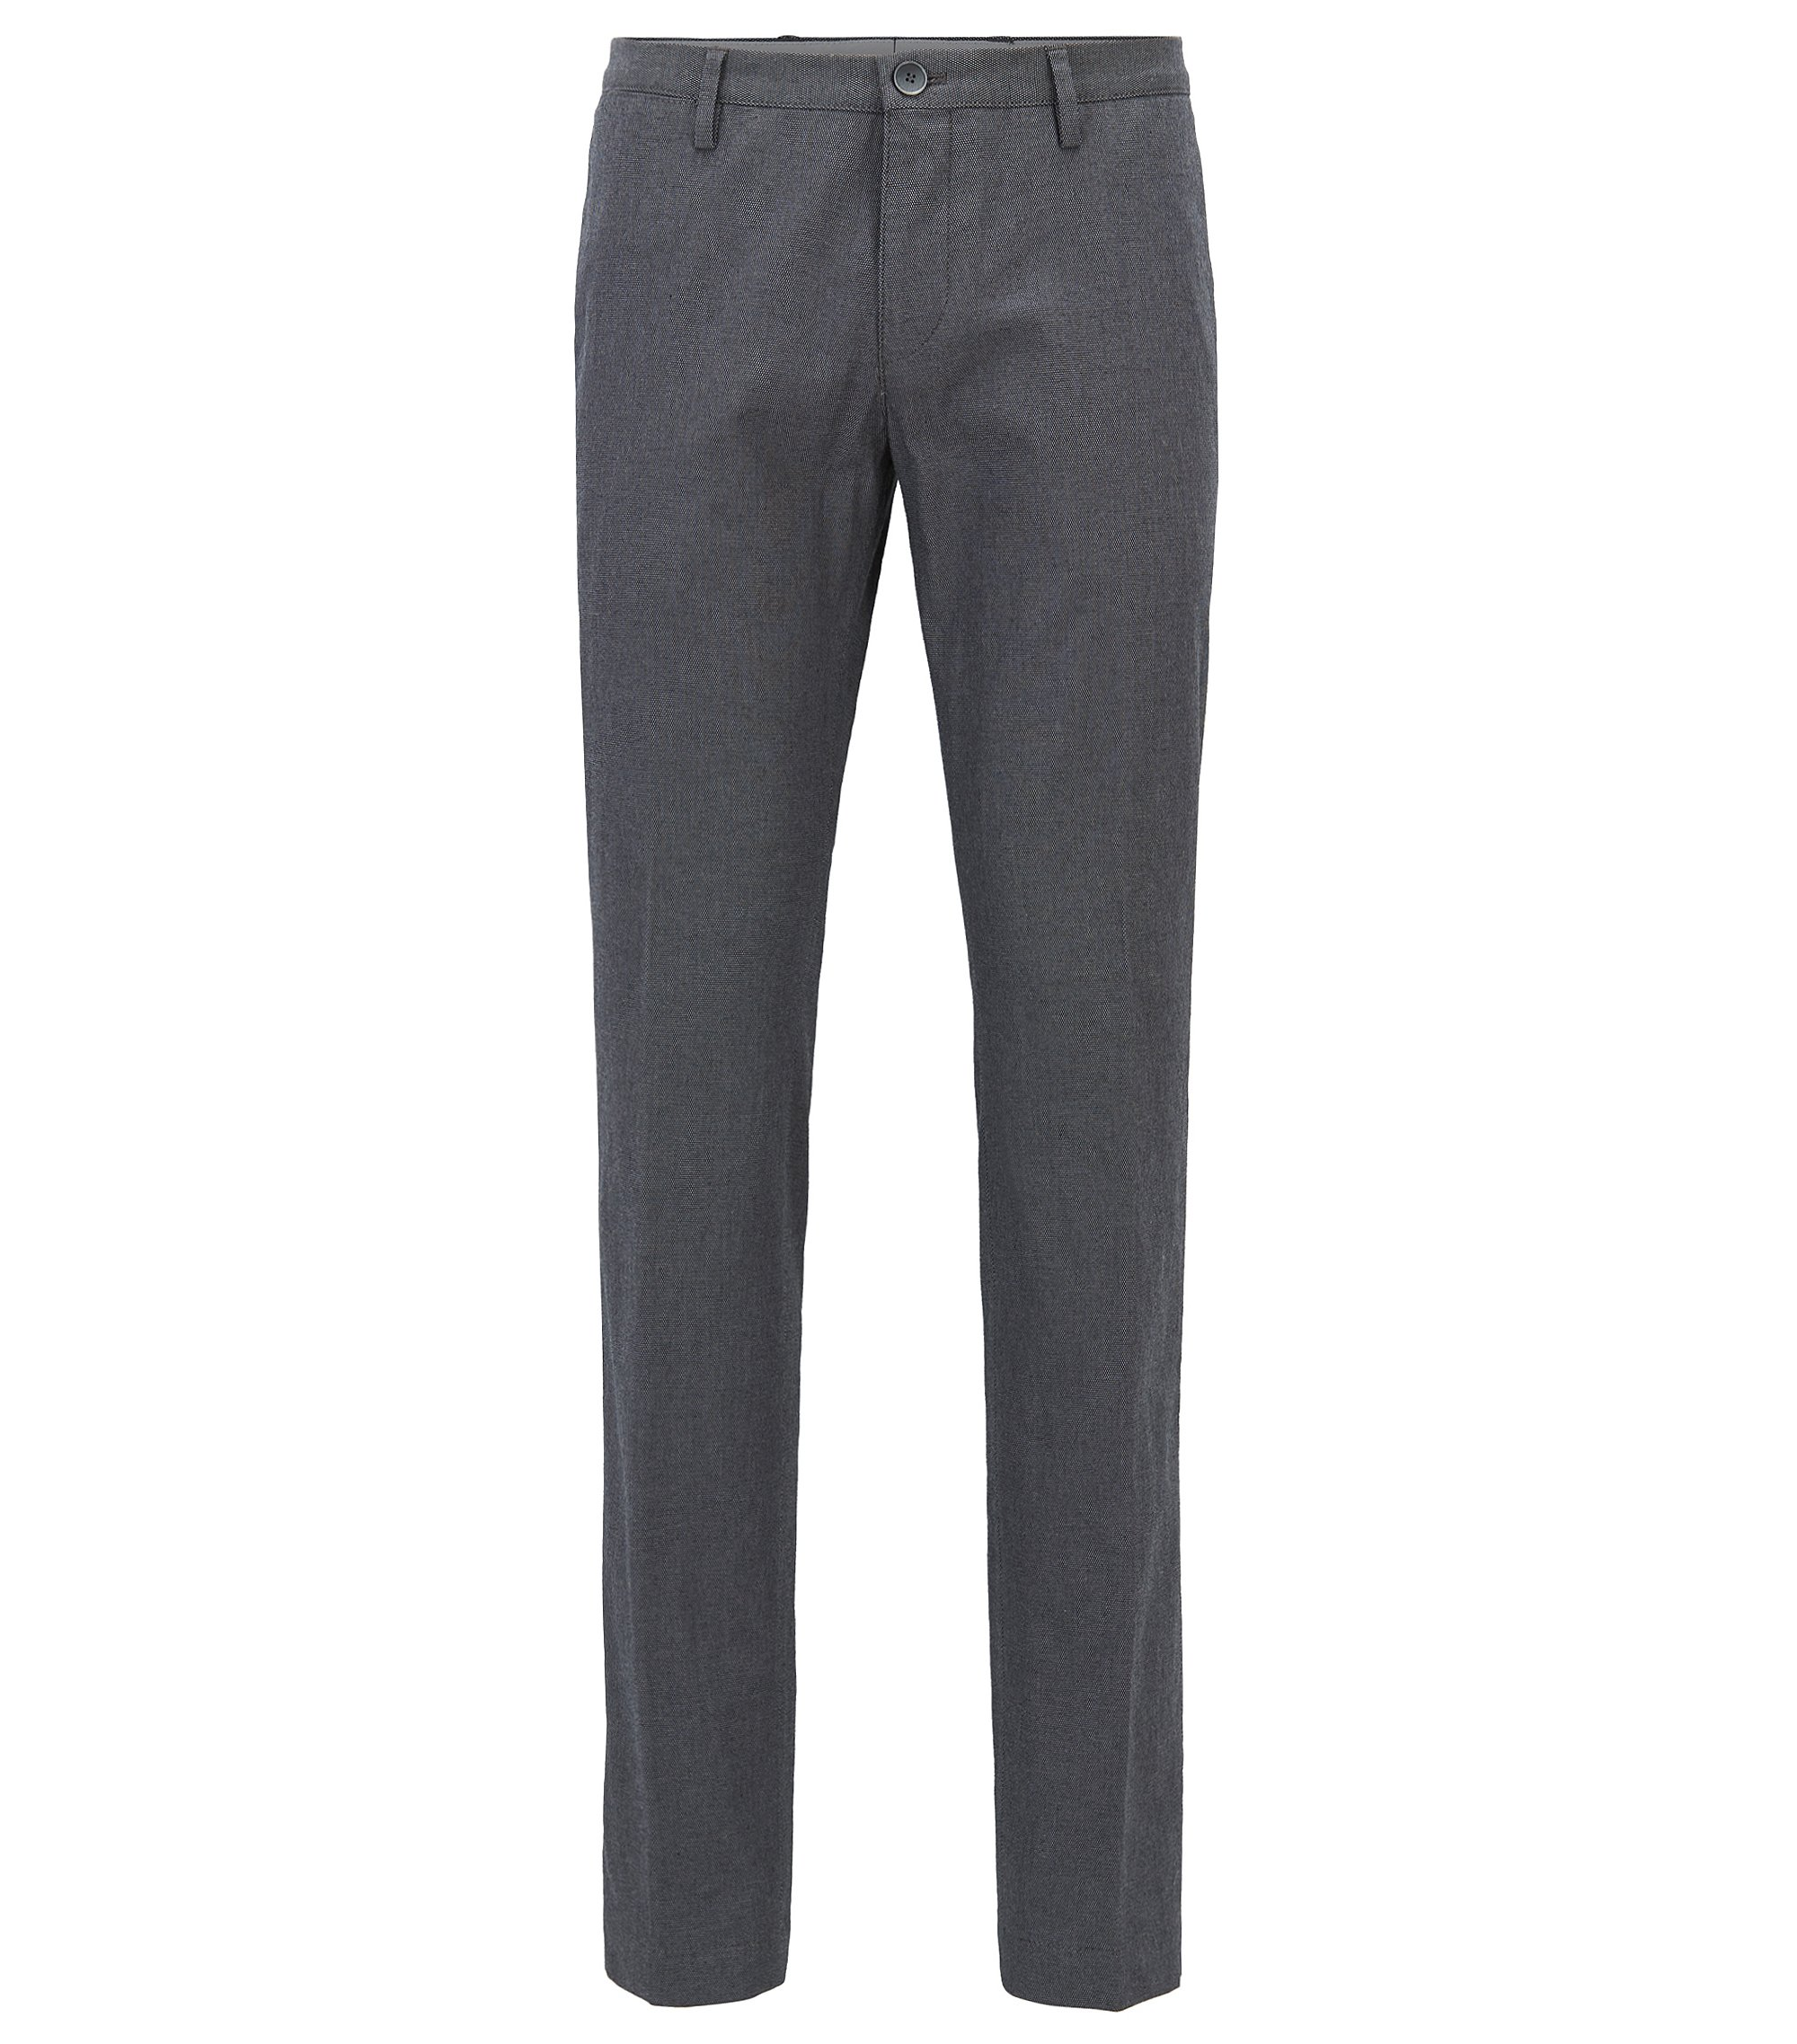 Slim-fit trousers in melange stretch cotton, Grey